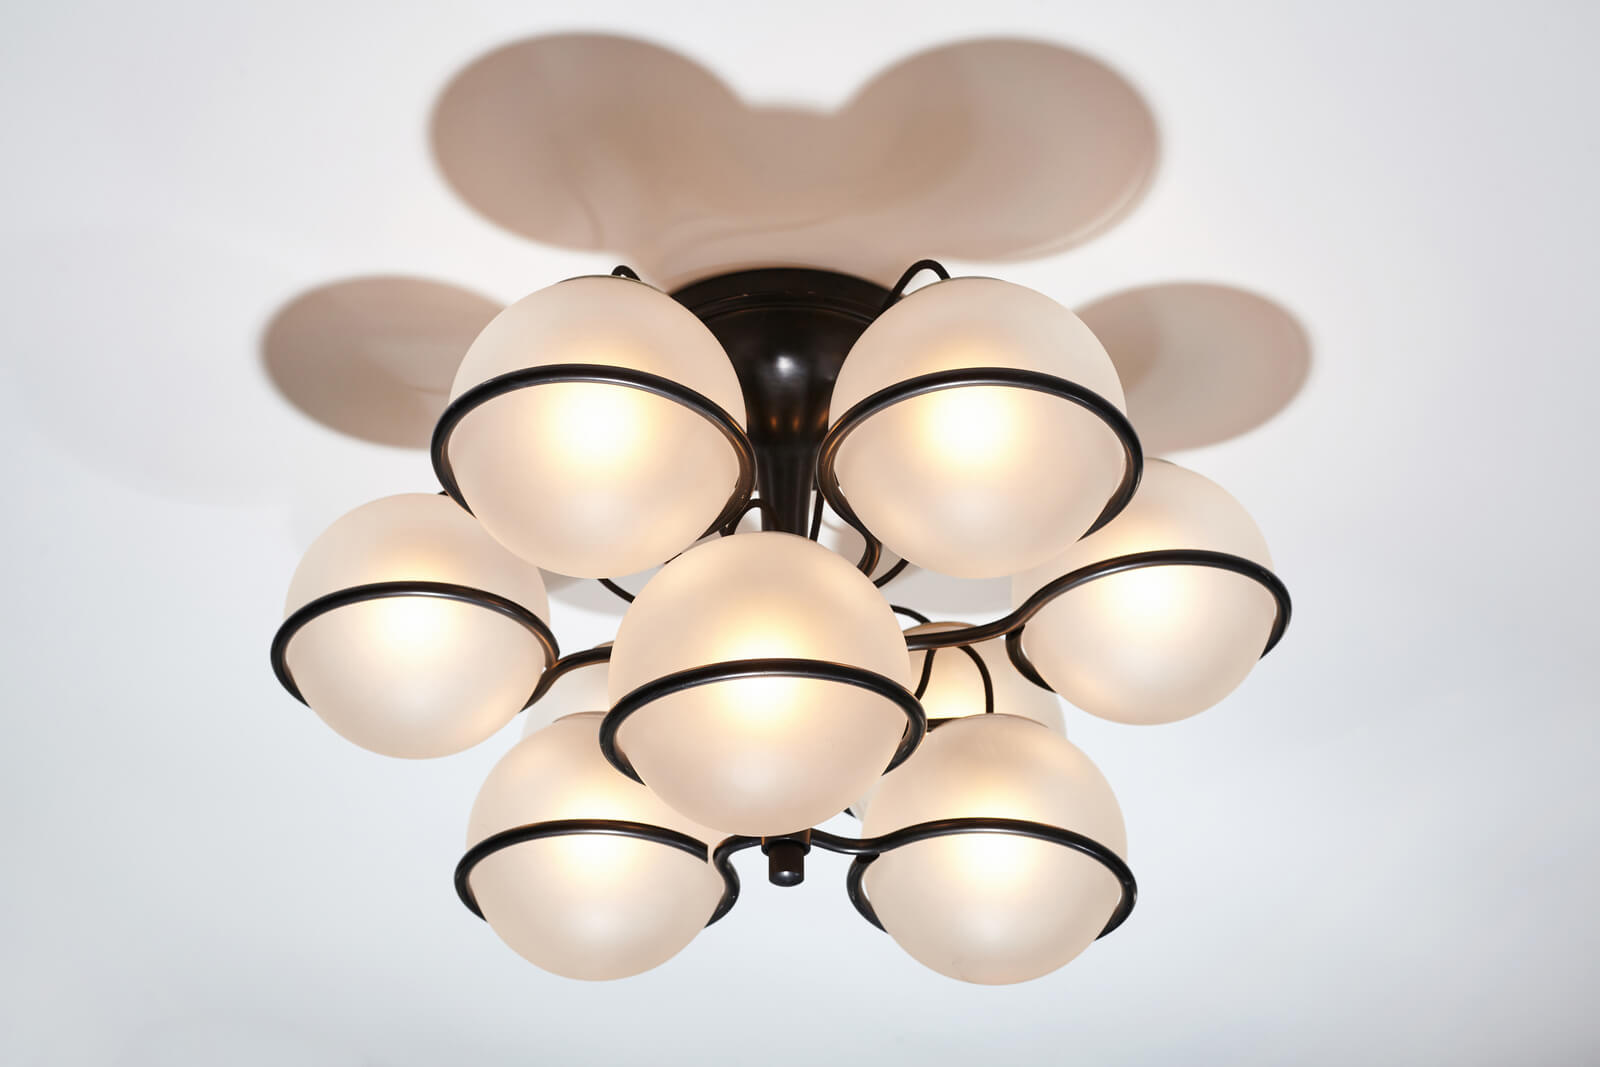 Ceiling lamp by Gino Sarfatti for sale